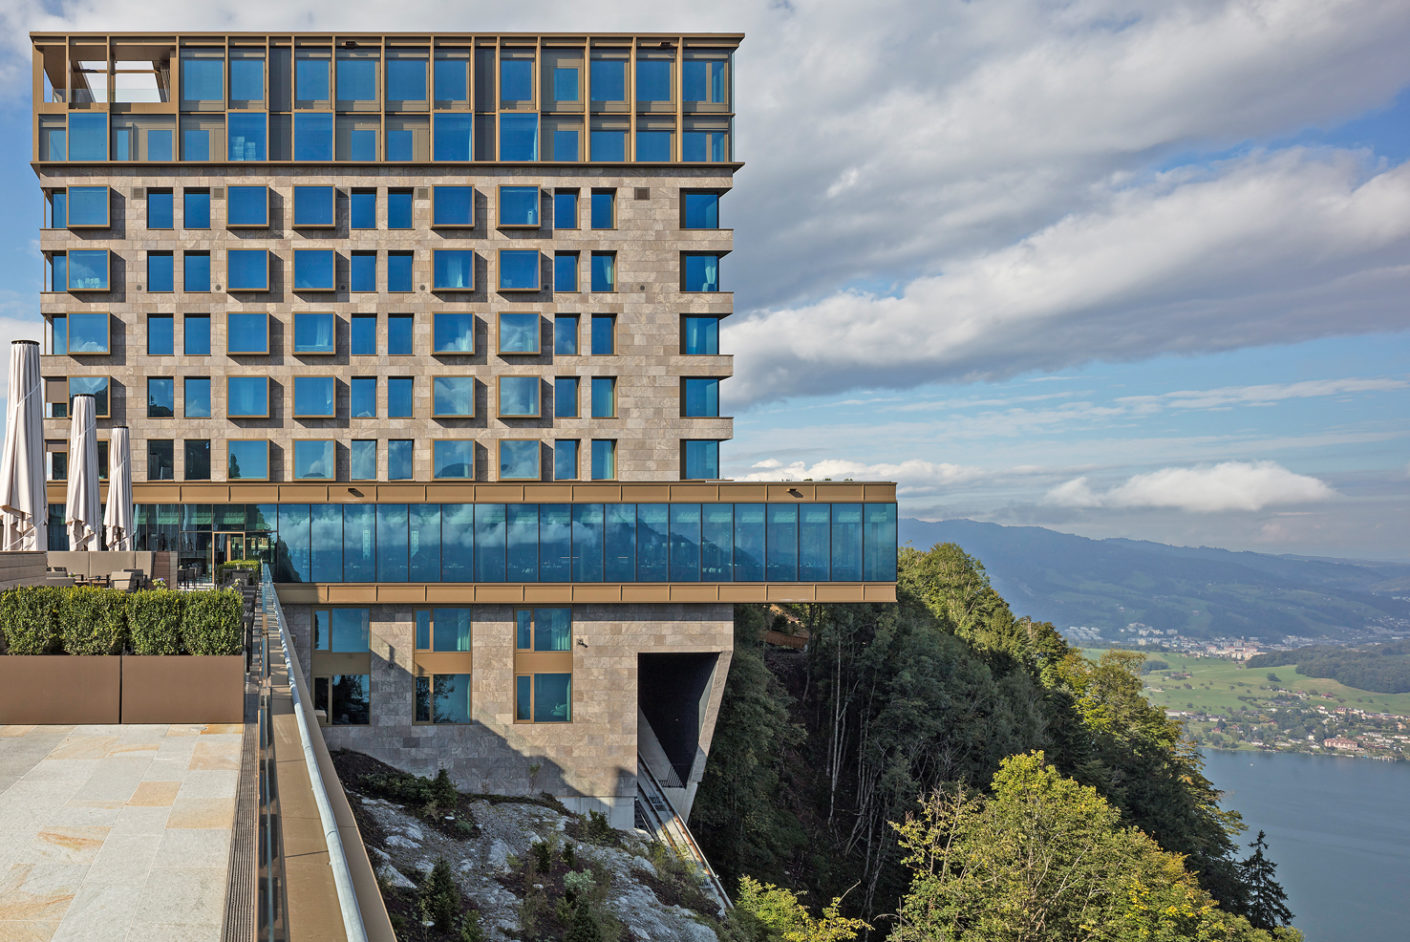 The recently opened Bürgenstock Hotel is situated on the steep slopes of the Bürgenstock mountain.